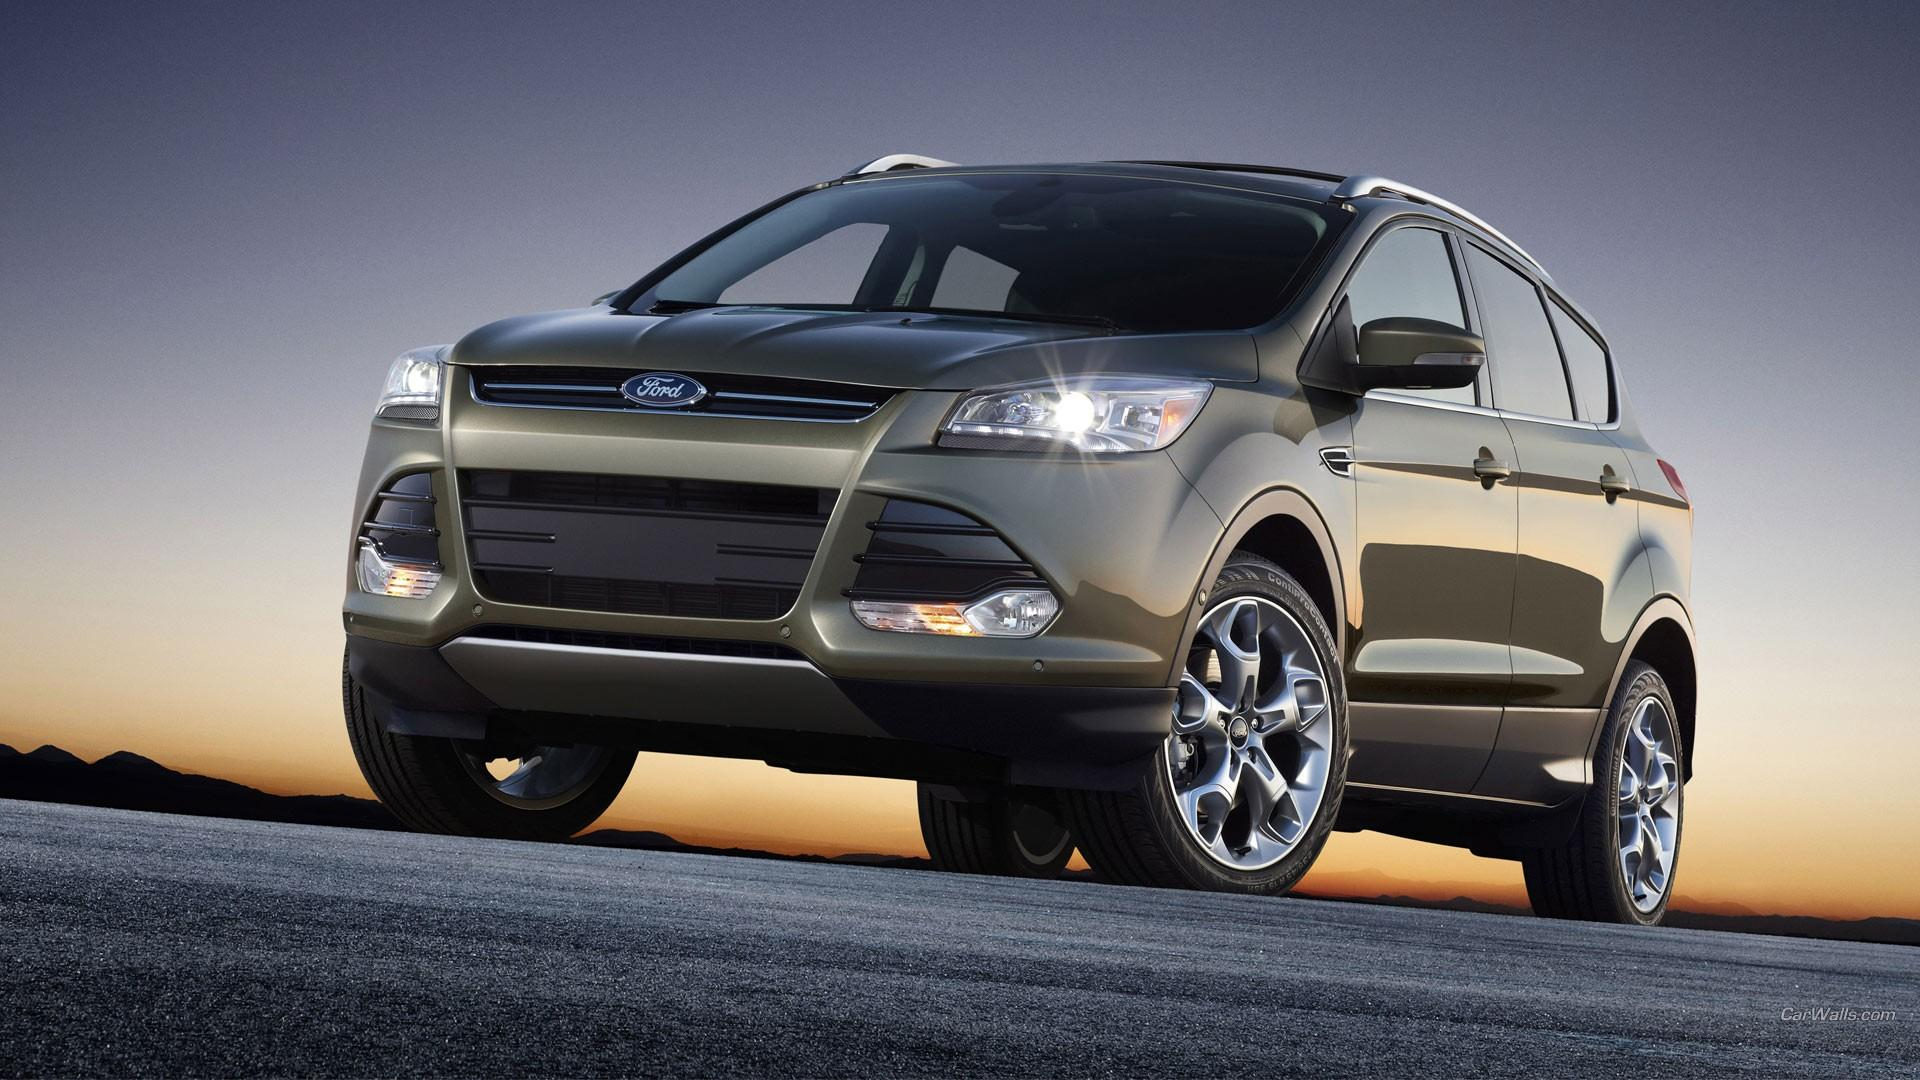 Ford, Ford Kuga Wallpapers HD / Desktop and Mobile Backgrounds